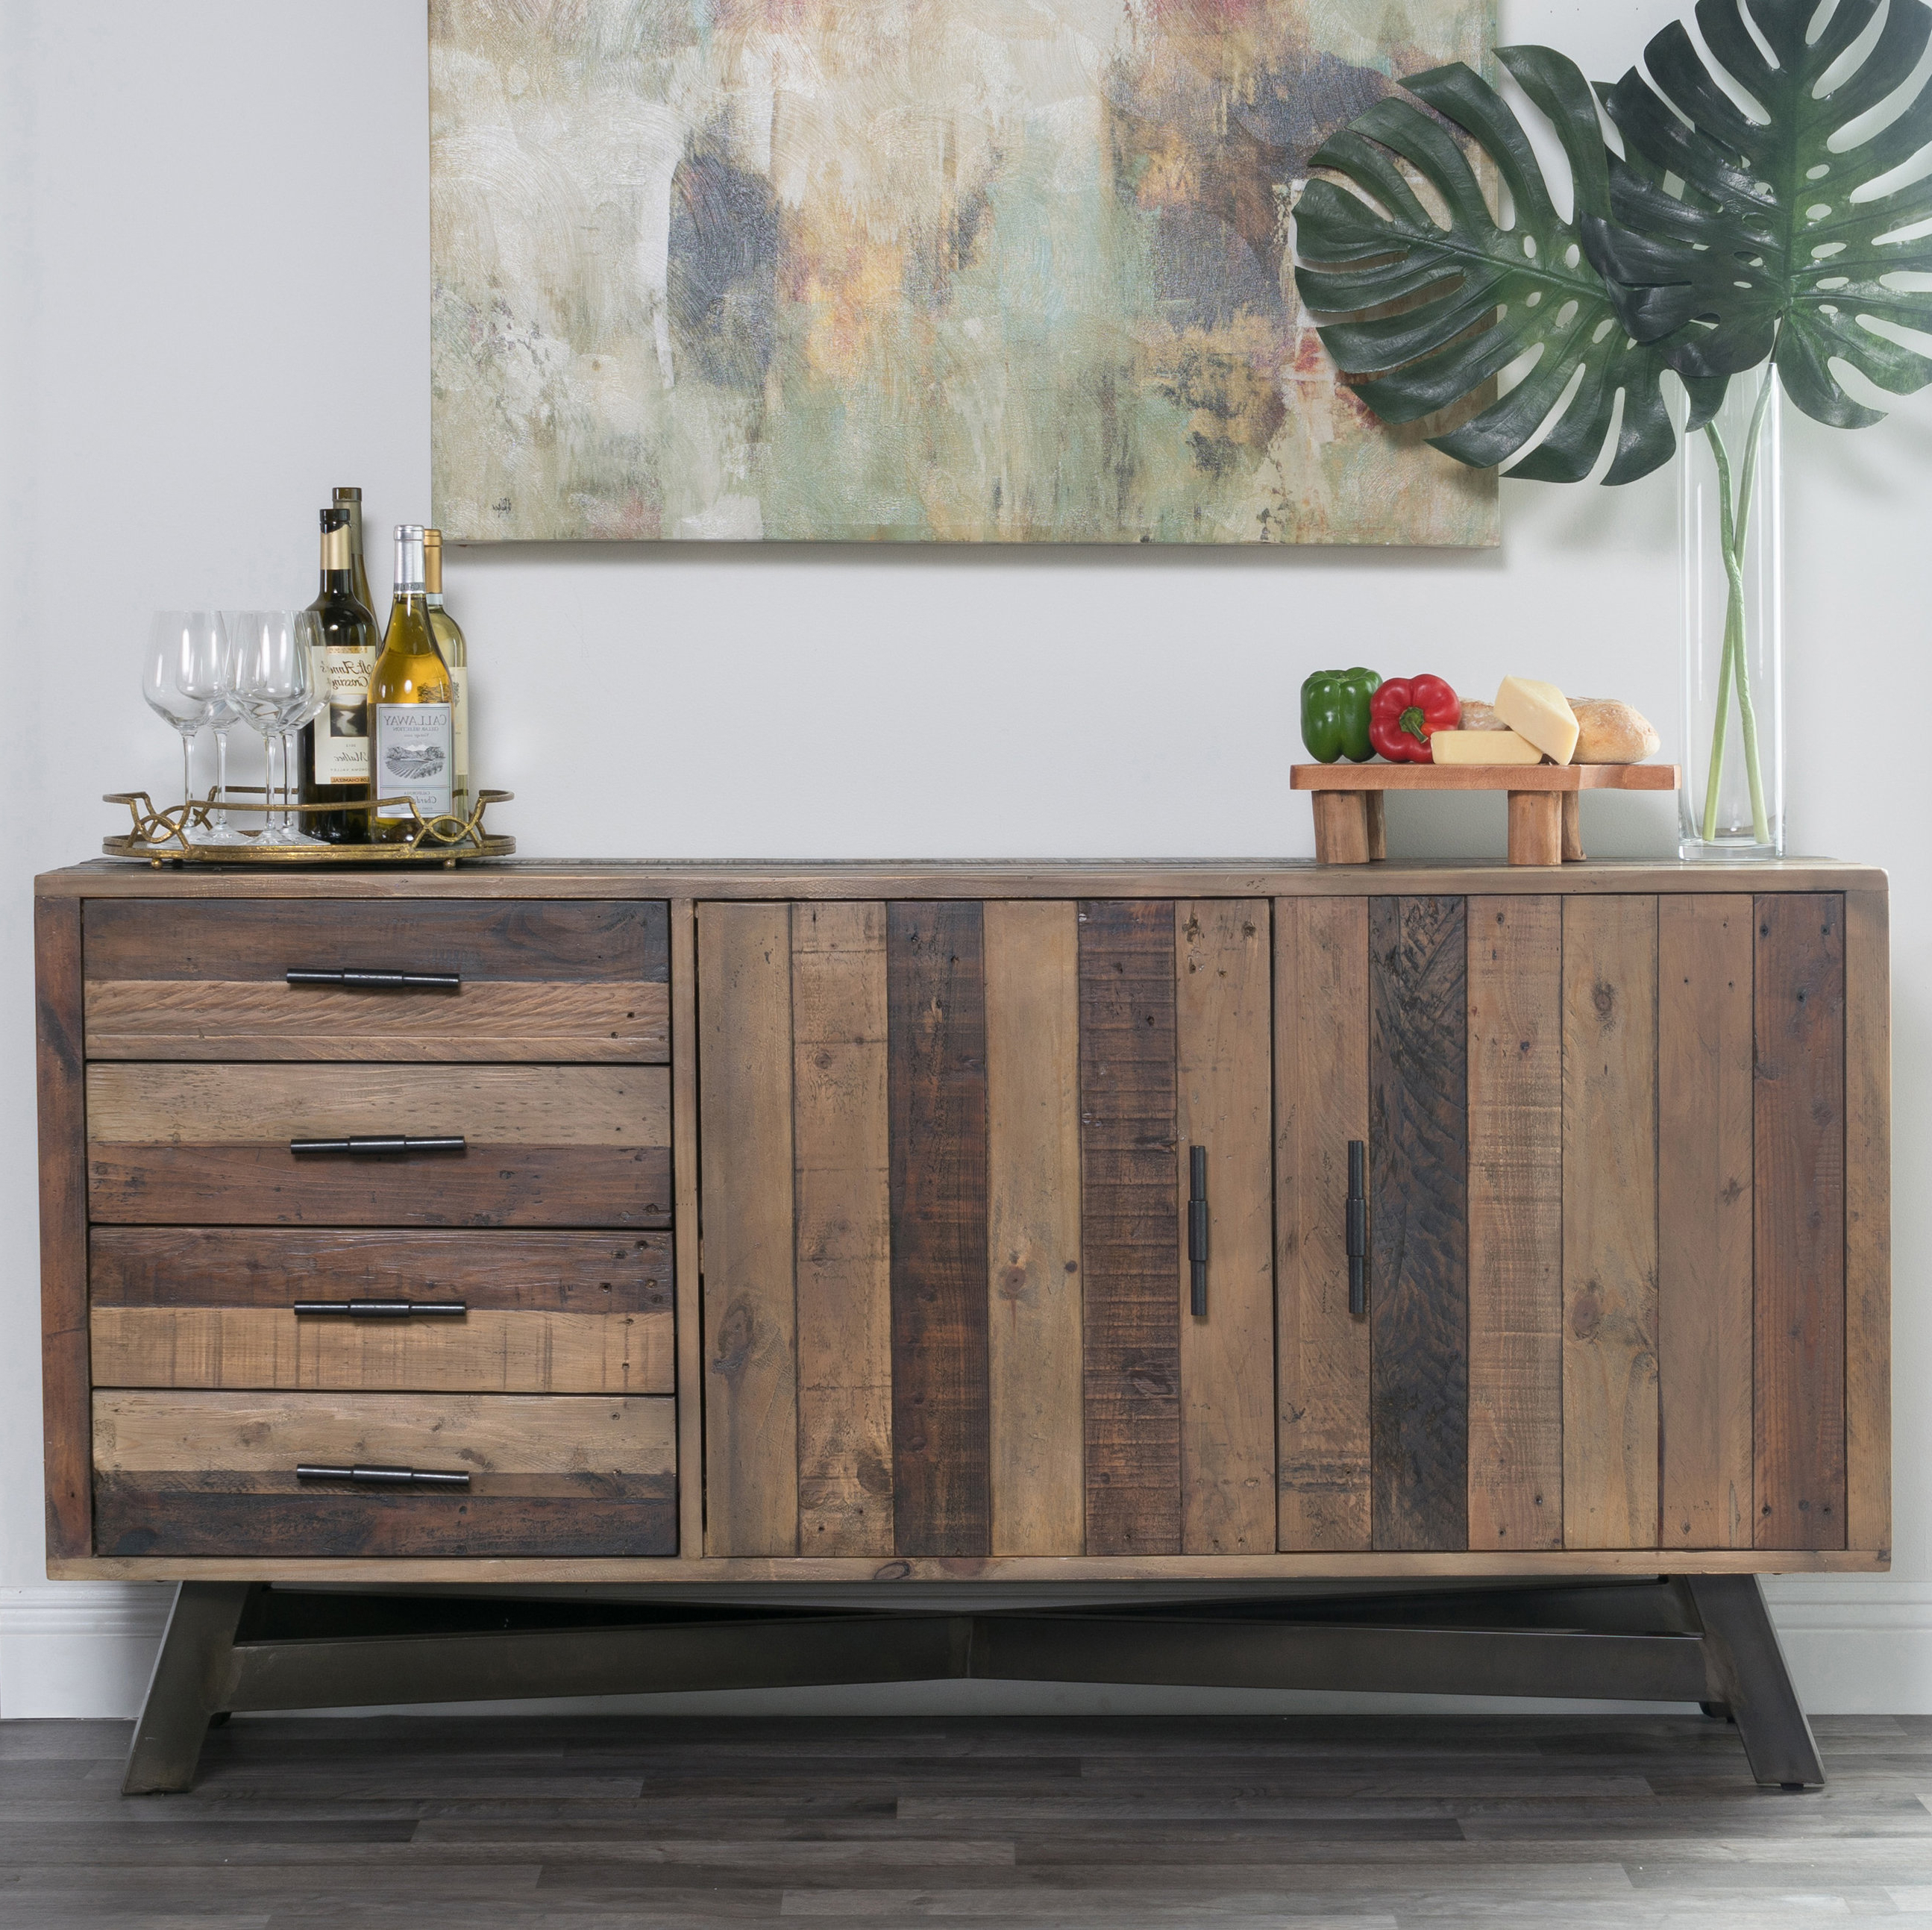 Farmhouse & Rustic Reclaimed Wood Sideboards & Buffets With Regard To Filkins Sideboards (View 7 of 20)